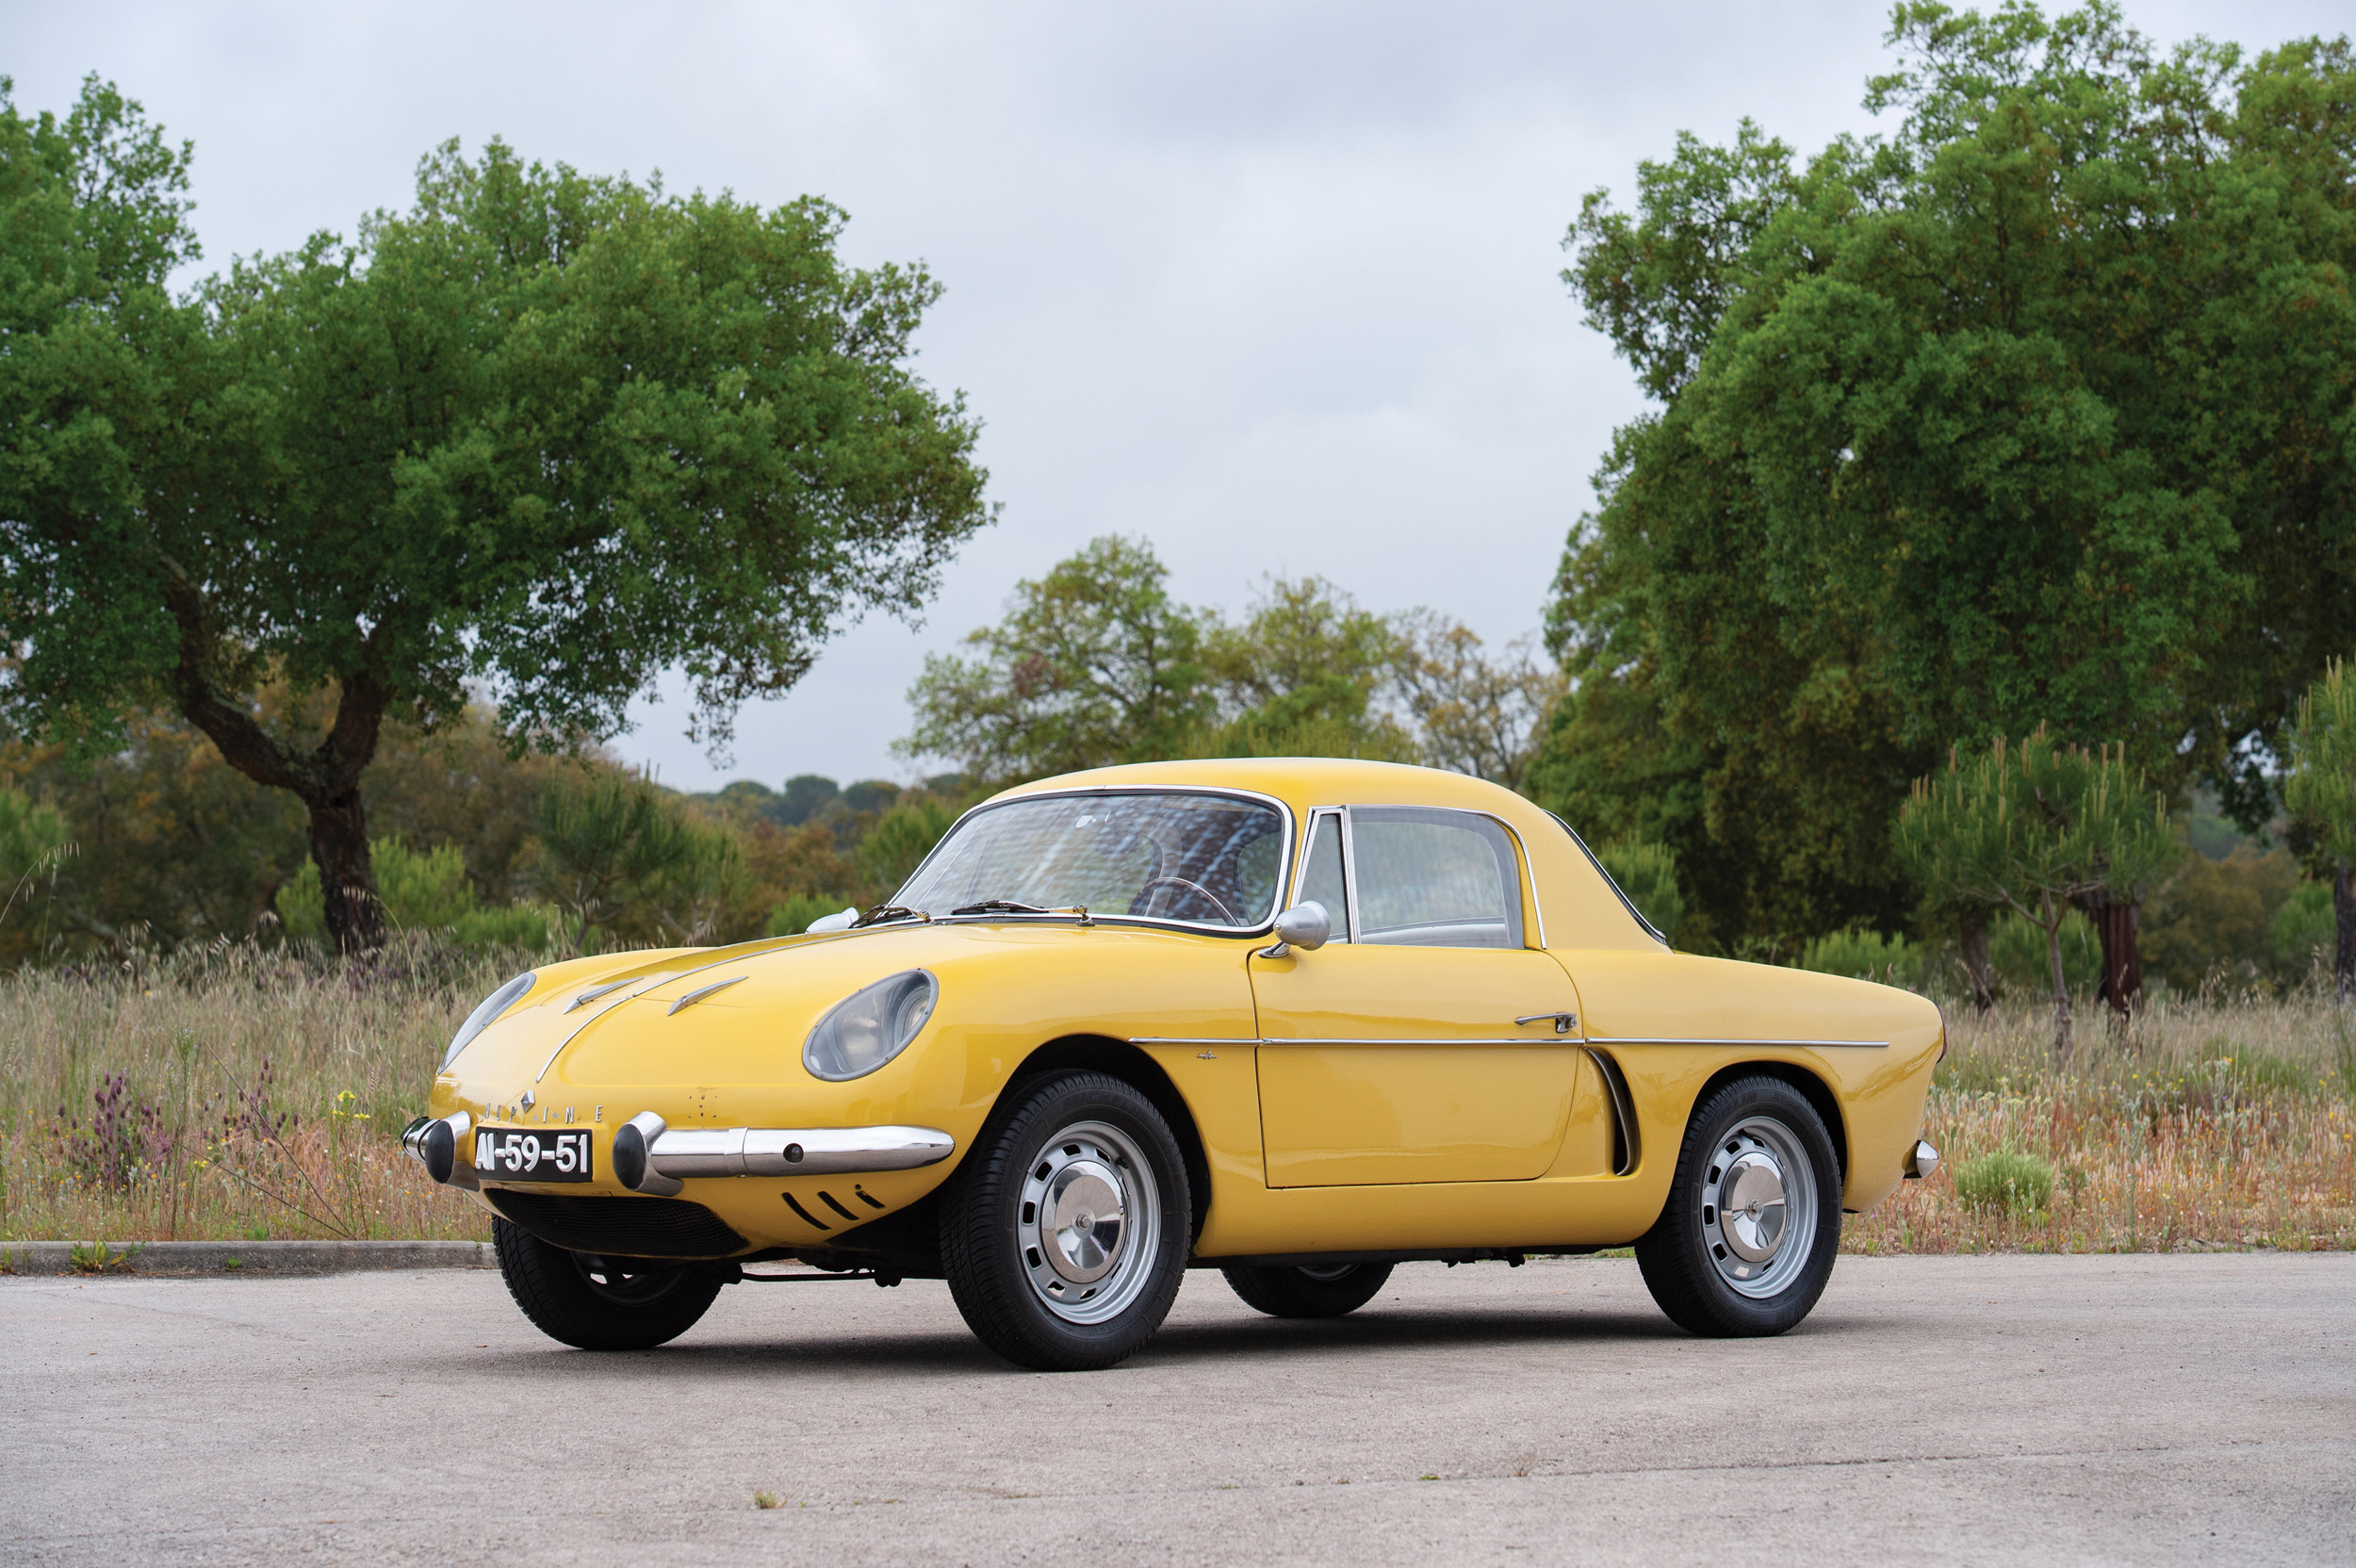 1963 Willys Interlagos (Credit- Tom Wood ©2019 Courtesy of RM Sotheby's) - Portuguese Sale